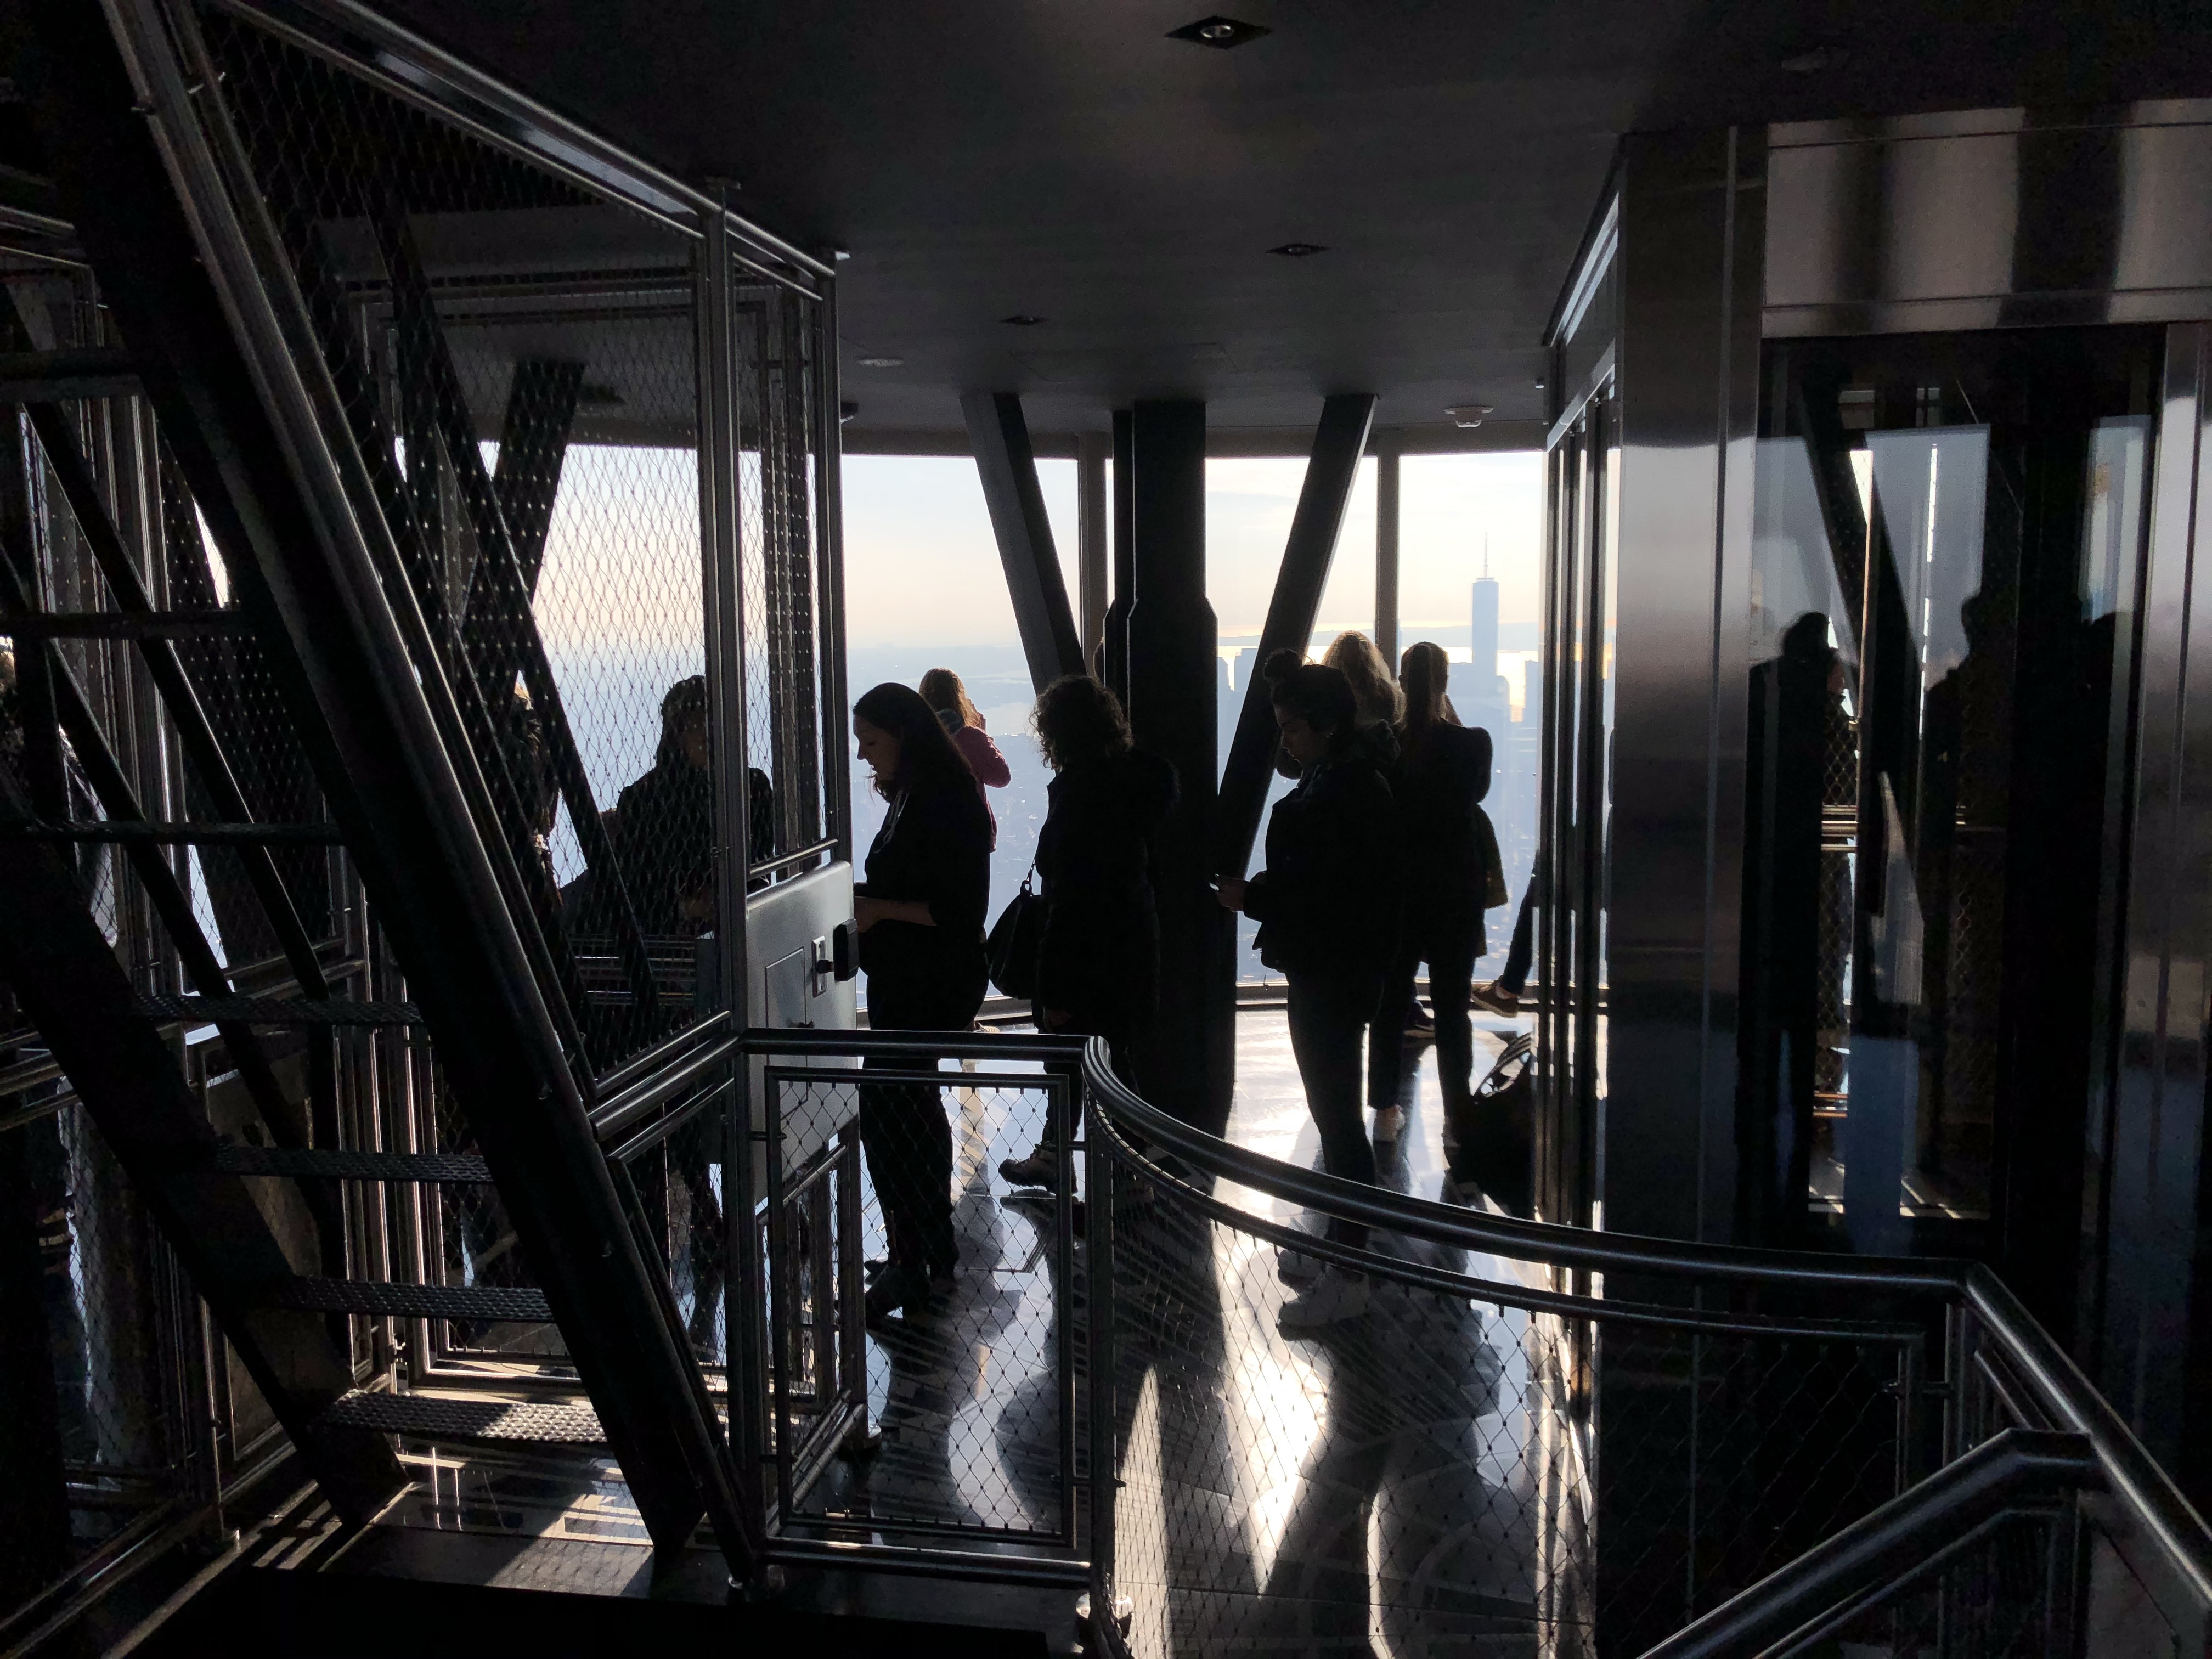 Empire State Building 102nd Floor Observatory